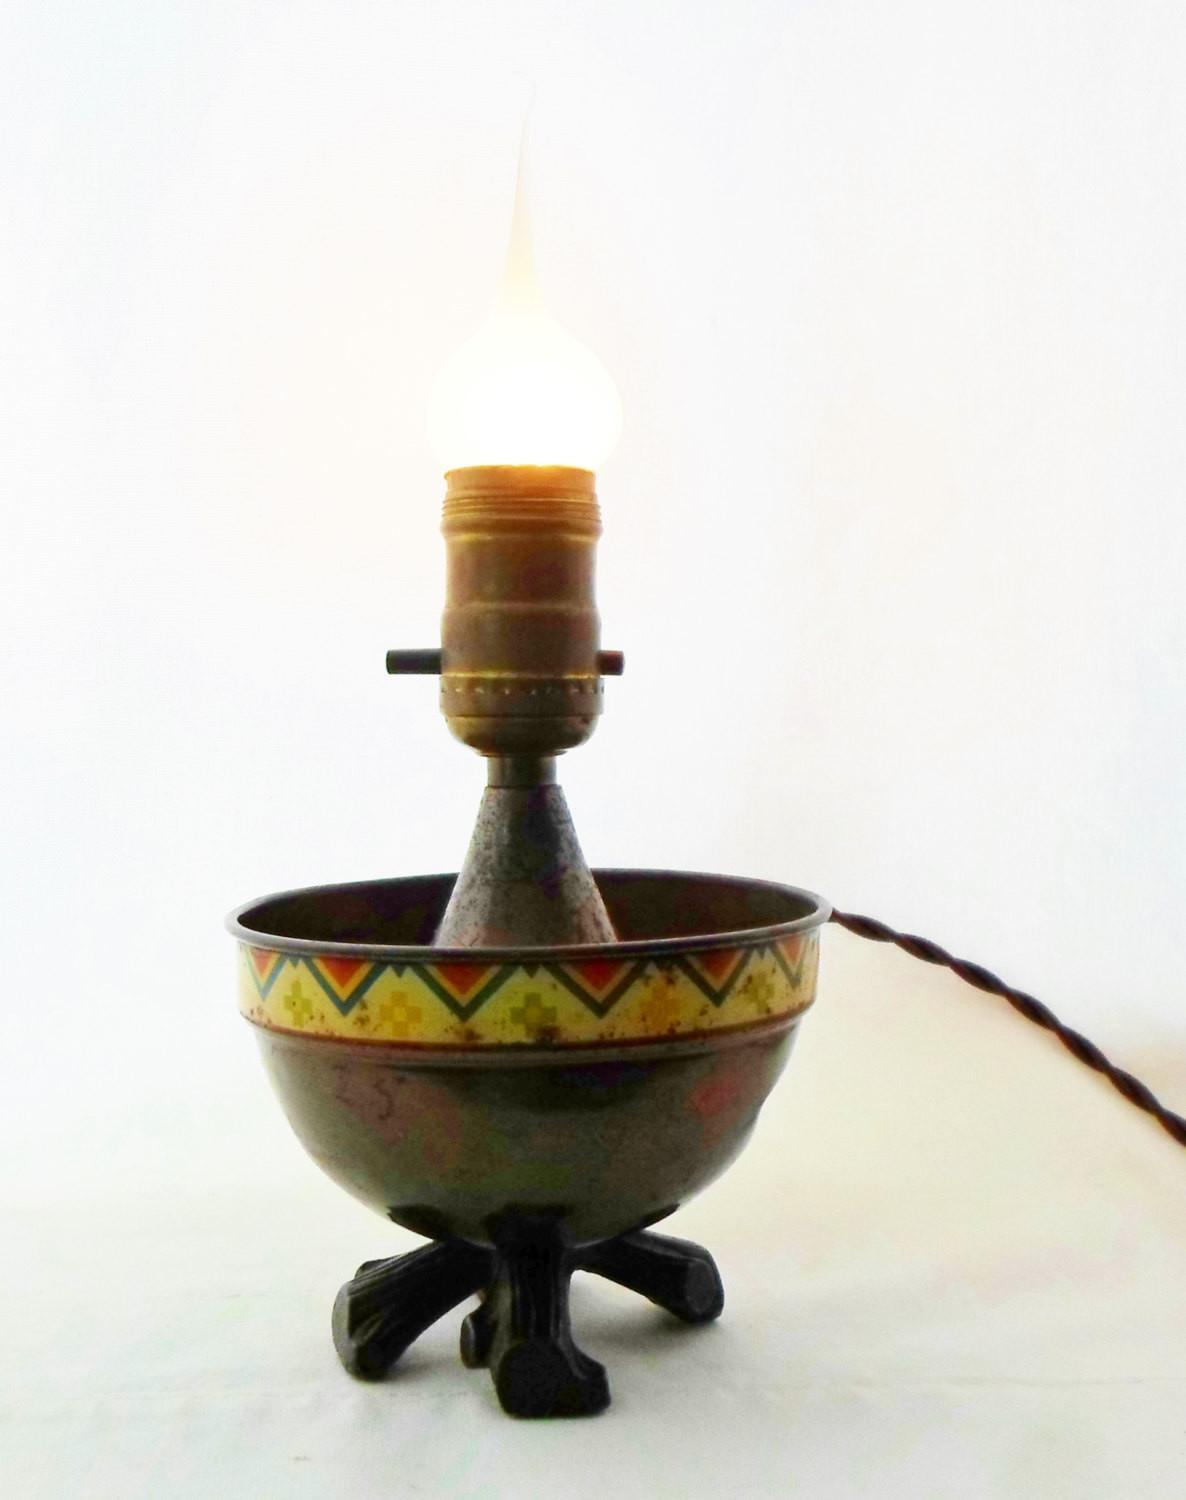 Antique Native American Indian Lamp Lighting Campfire